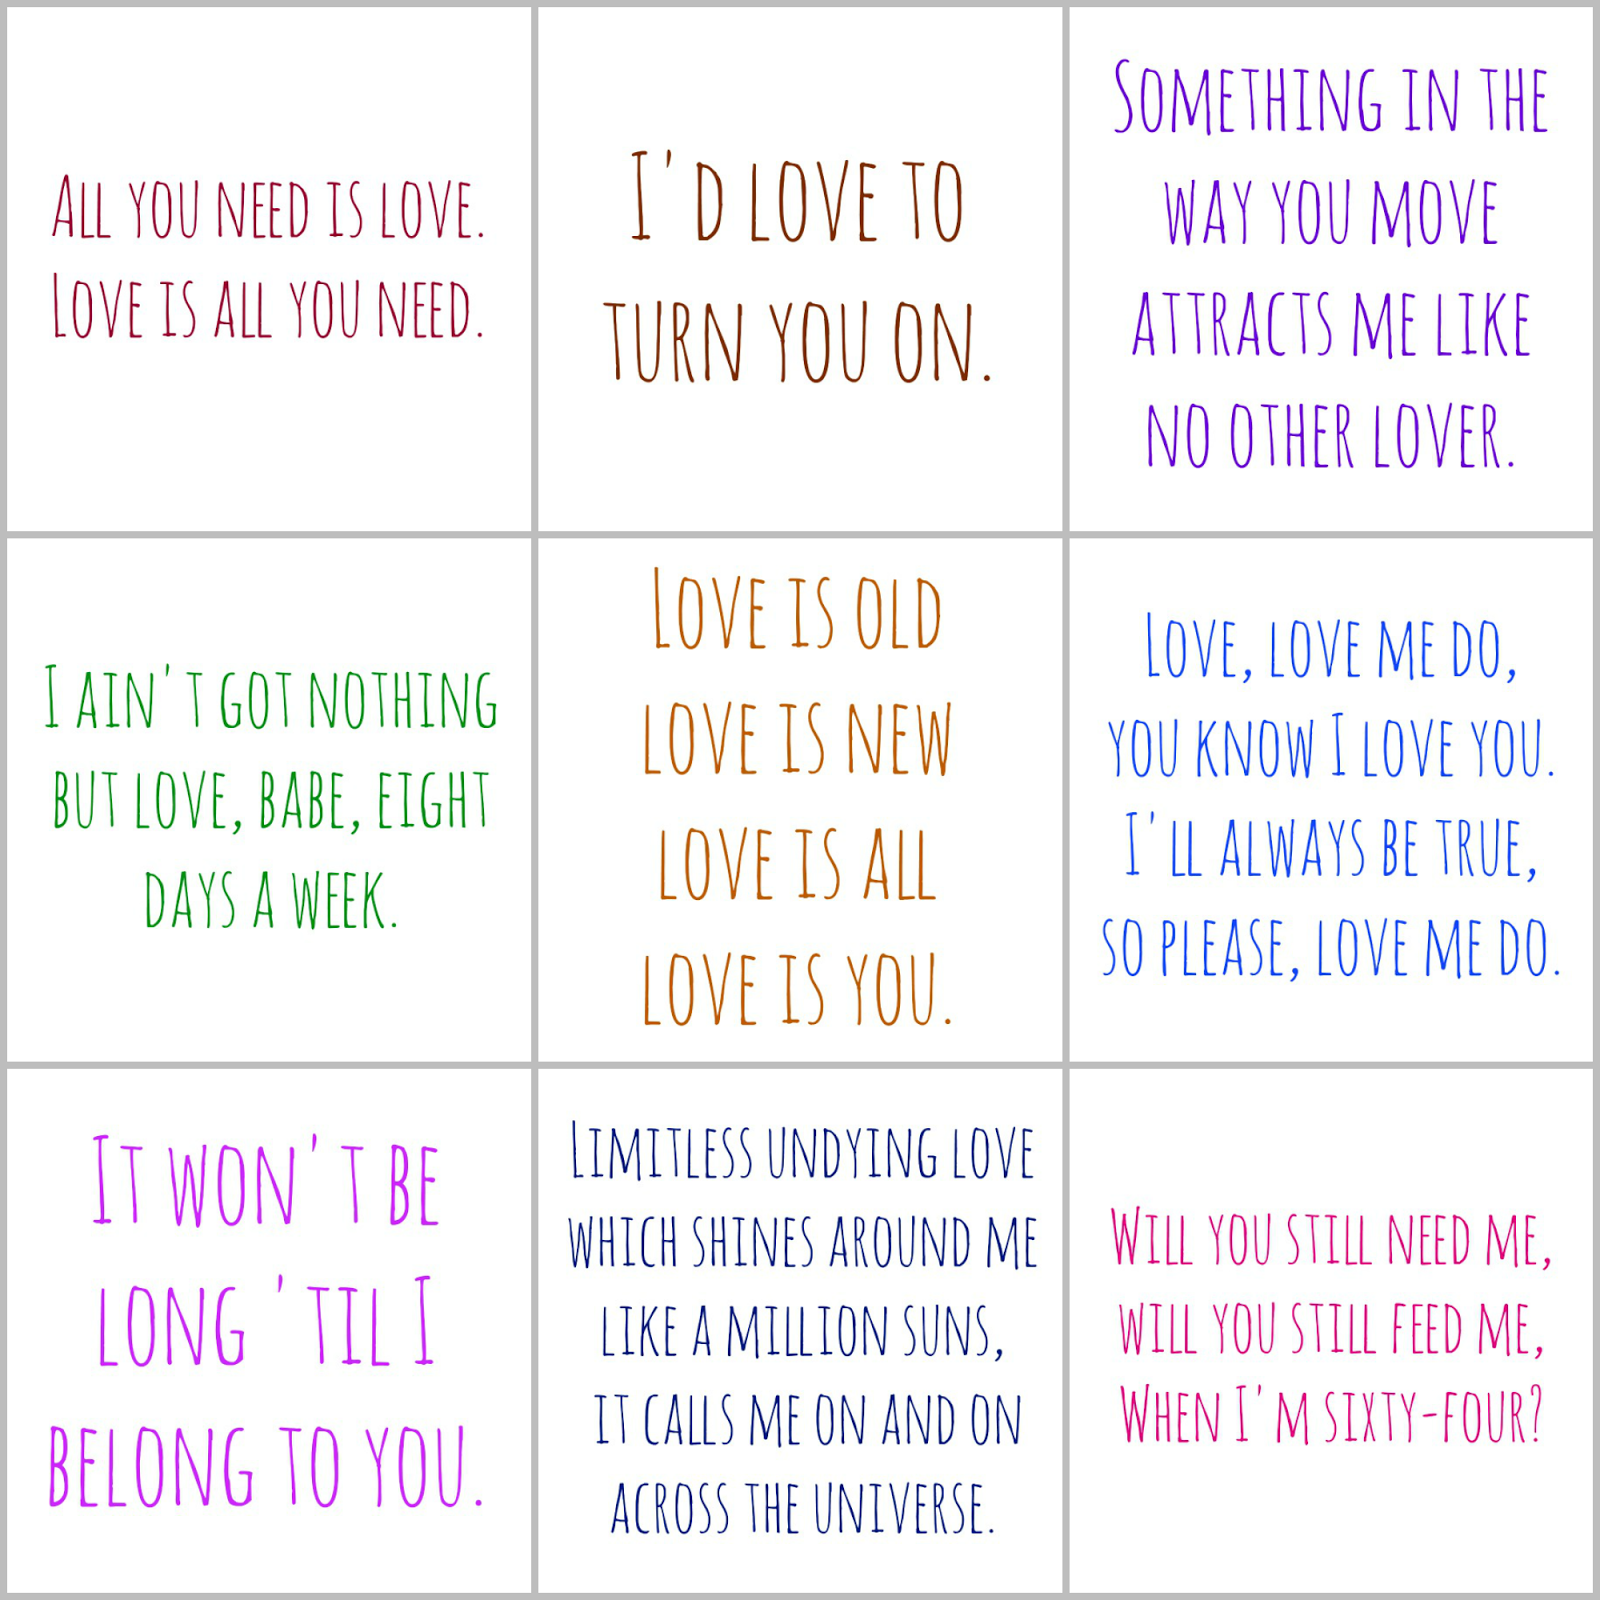 9 Romantic BEATLES Printable Lunch Bag Notes for Your Husband . Free printable lunch notes for men. Romantic lunch notes. Romantic Beatles lyrics. lunch box notes for my husband lunchbox love notes for spouse cute lunch box notes for husband lunch box notes for adults free printable lunch notes for husband printable lunchbox notes for husband cute notes to leave your spouse in the morning funny notes to leave in husbands lunch Bohemian blog Bohemian mom blog Bohemian mama blog bohemian mama blog Hippie mom blog Offbeat mom blog offbeat home offbeat living Offbeat mama blogs like Offbeat mama